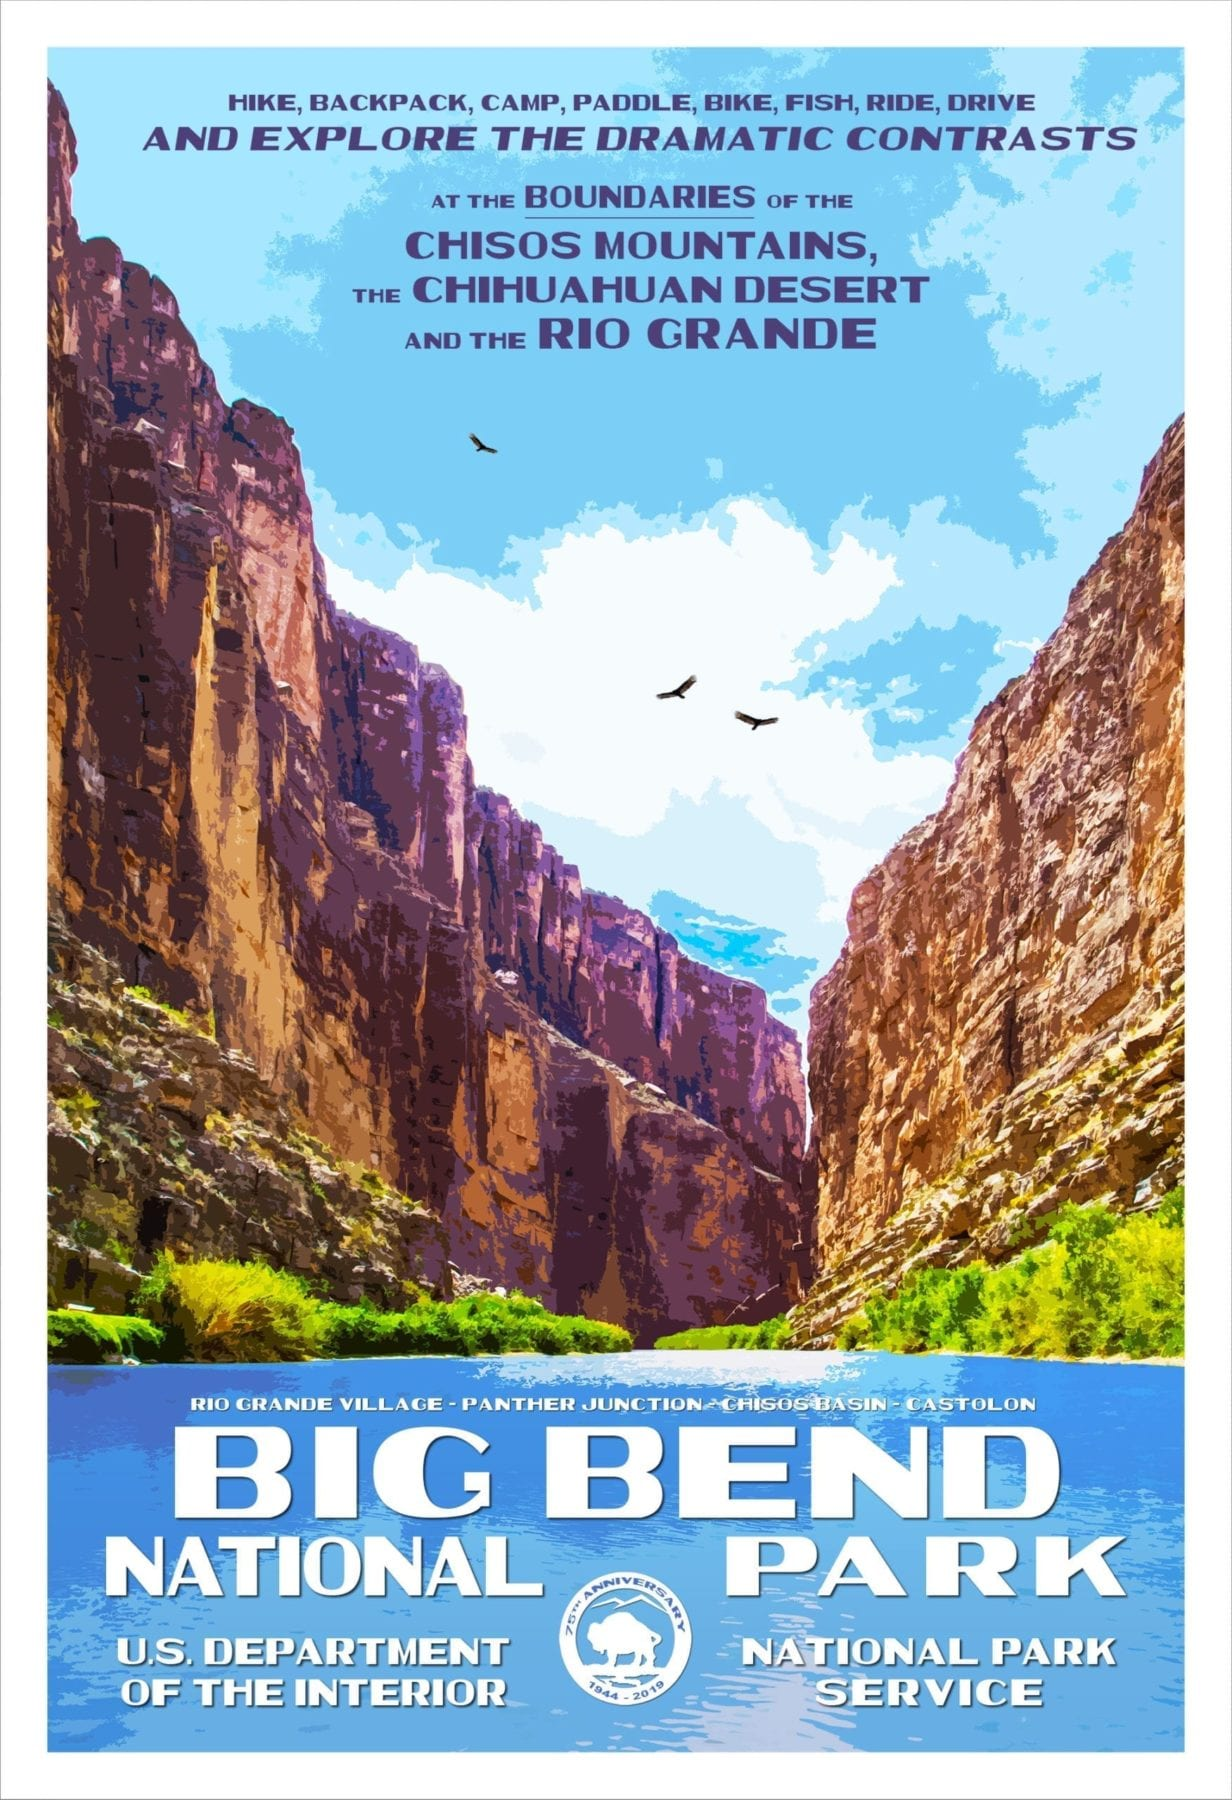 Rob Decker's Poster's Big Bend